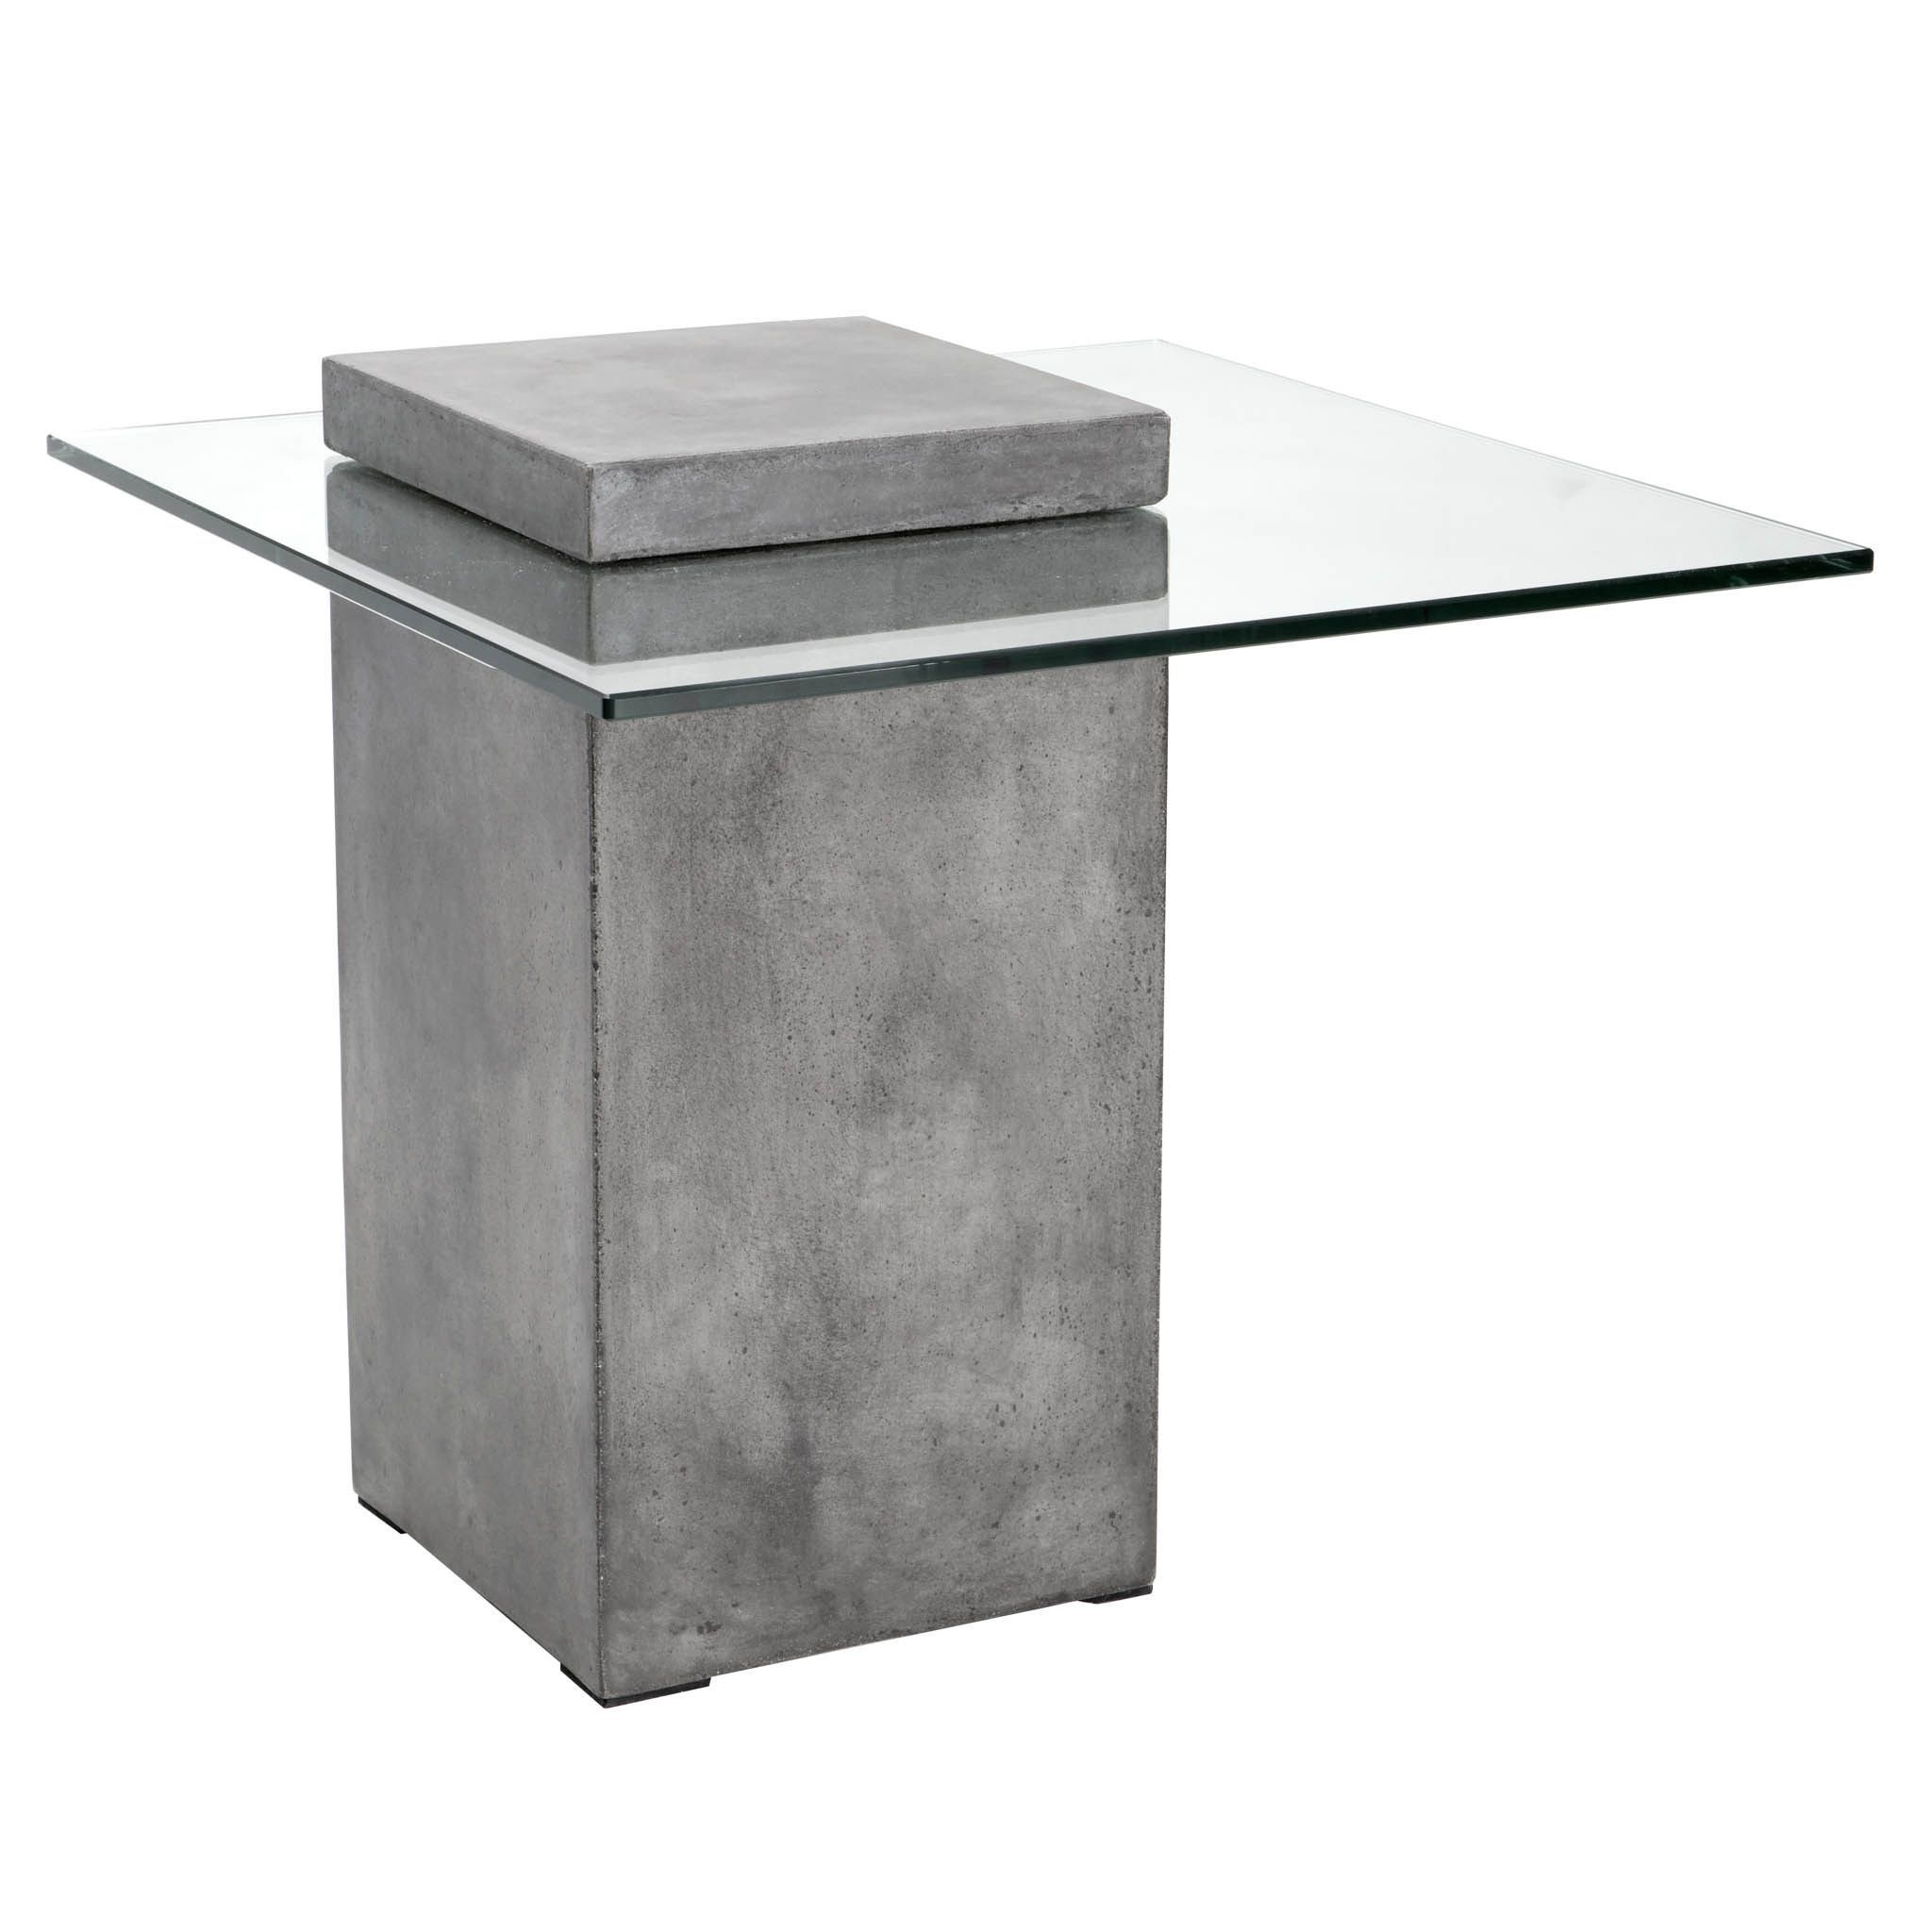 sunpan 'mixt' grange anthracite grey concrete glass end table. sunpan 'mixt' grange anthracite grey concrete glass end table